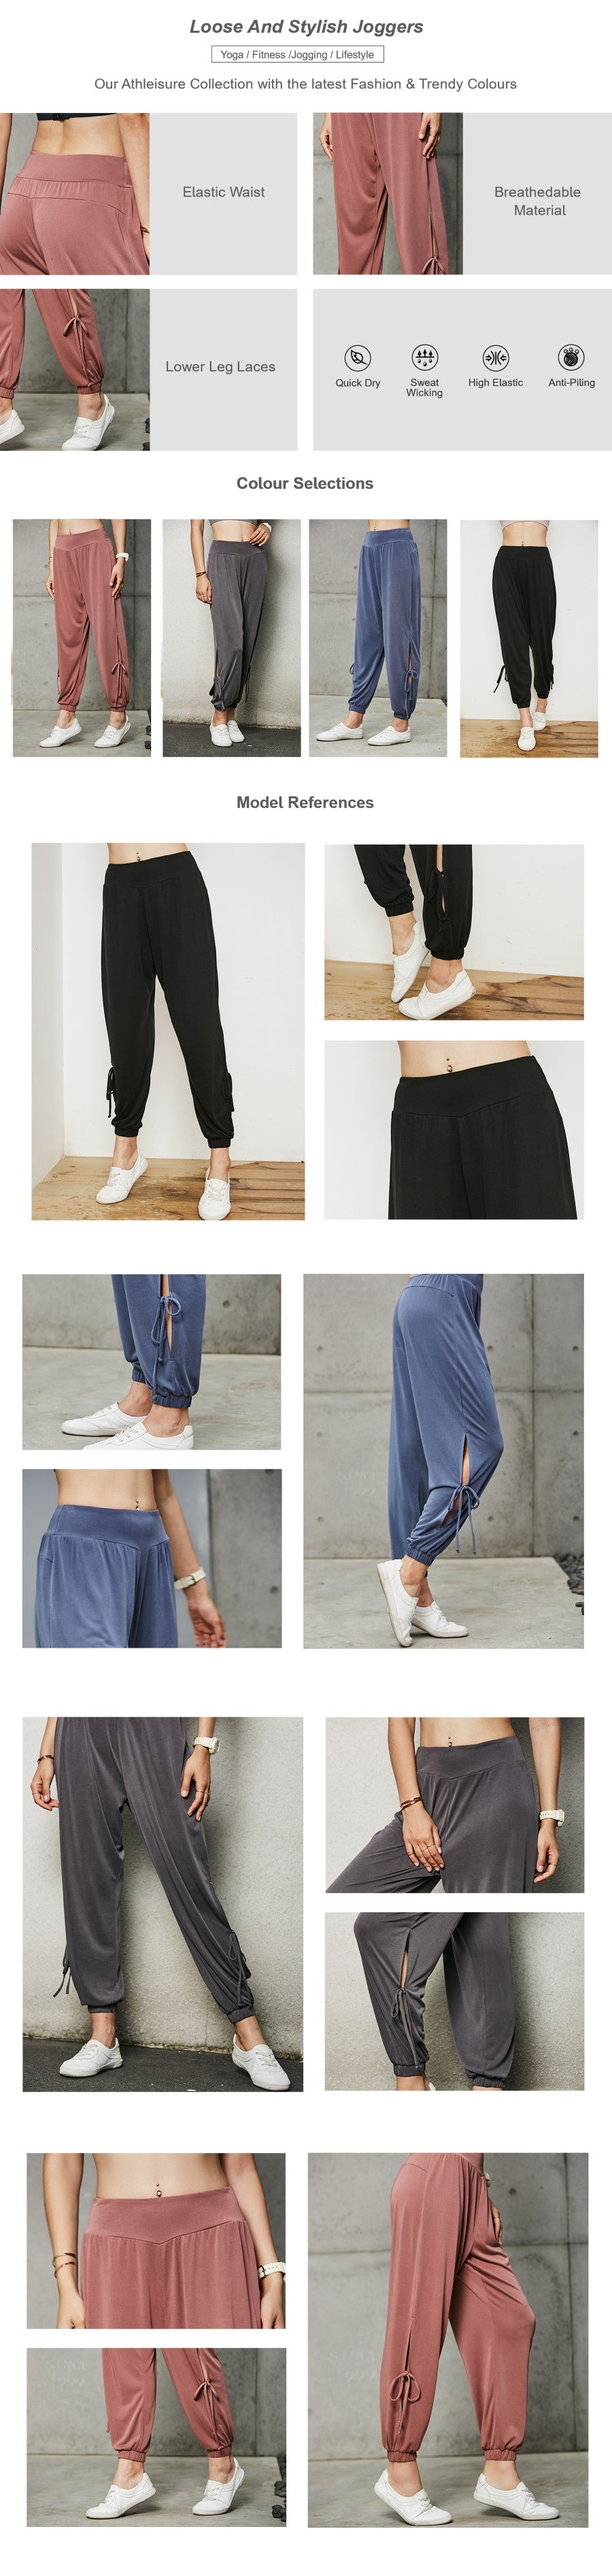 Loose And Stylish Joggers